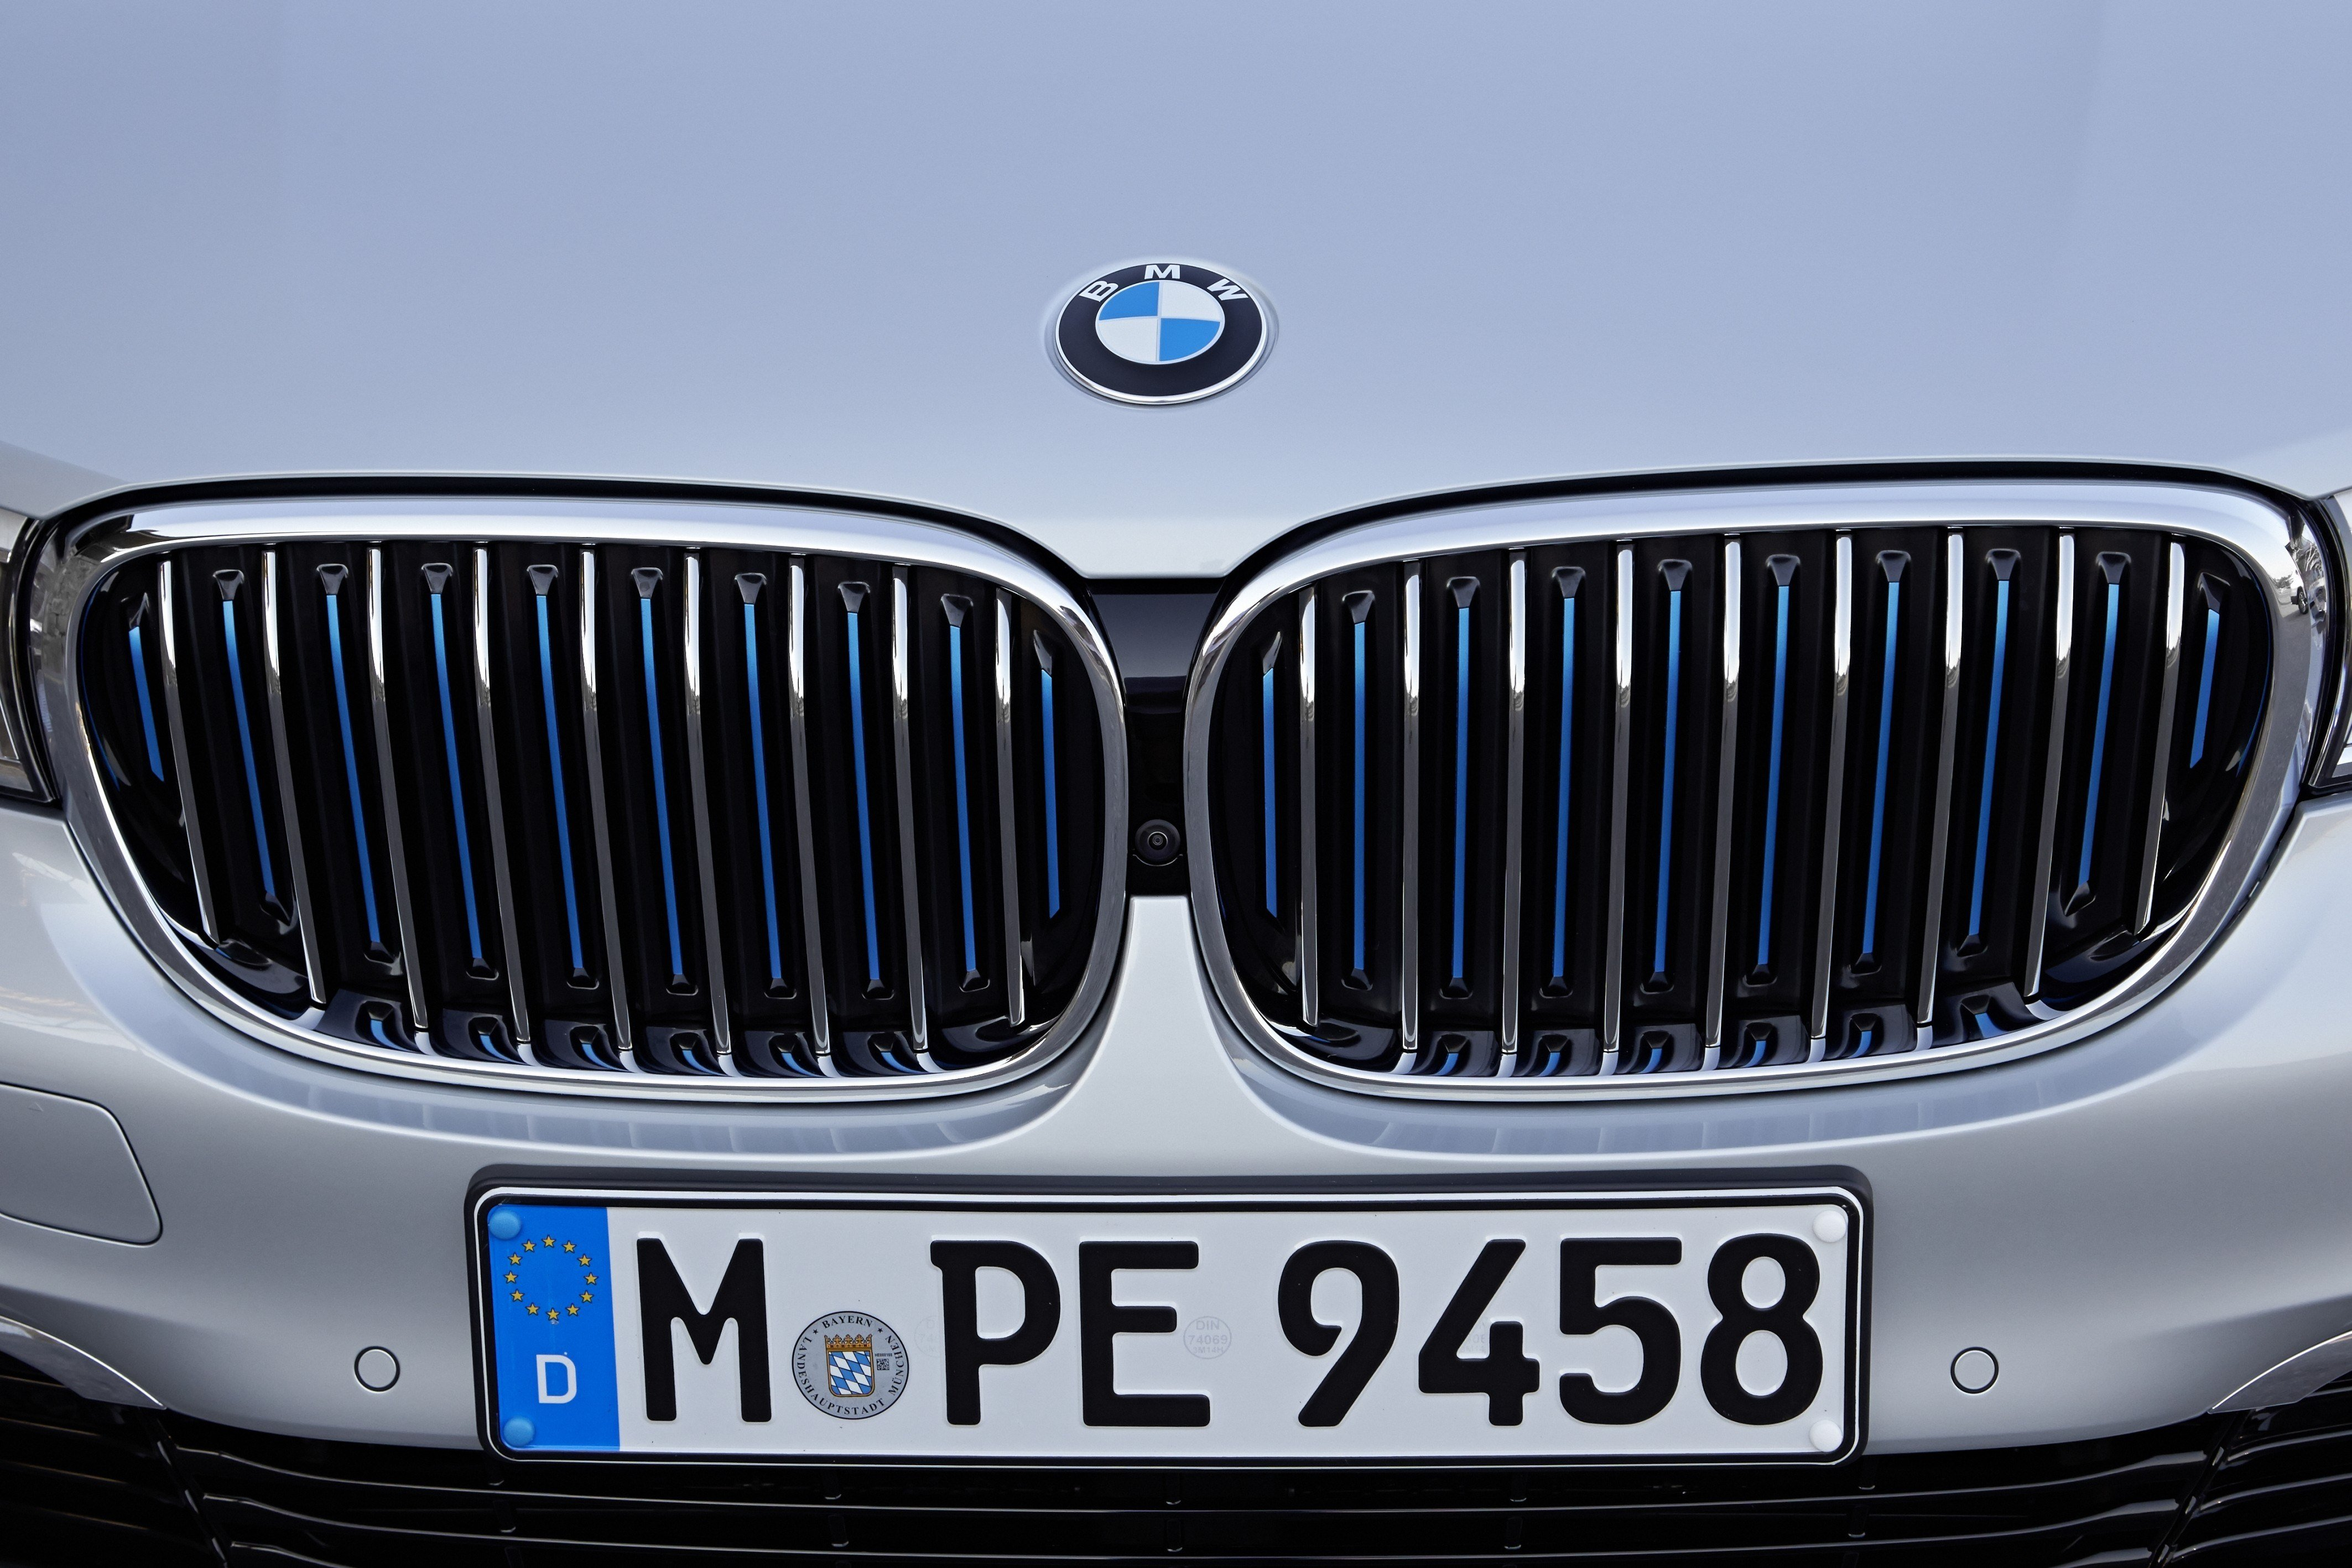 Latest 2016 Bmw 740Le Detailed With Fresh Batch Of Photos Free Download